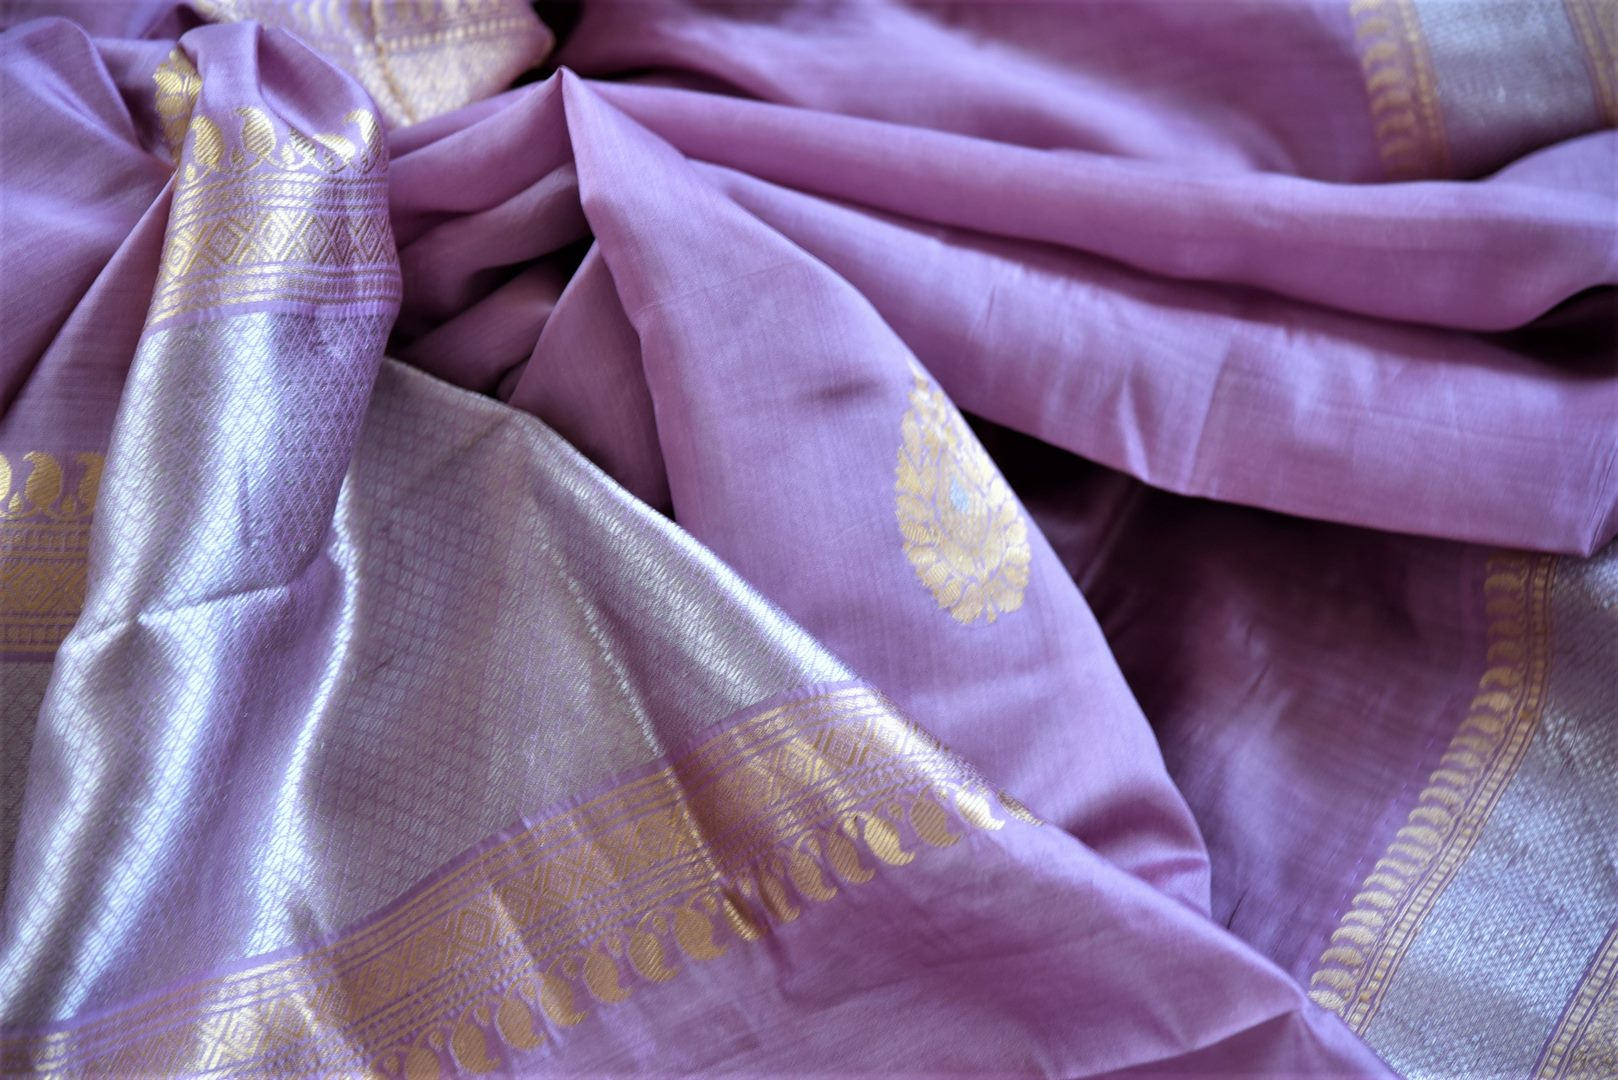 Buy lavender color Banarasi silk saree online in USA with silver golden zari border and buta. Be a vision of tradition and elegance on weddings and festivals with exquisite Banarasi silk sarees, pure silk sarees, handwoven sarees from Pure Elegance Indian clothing store in USA.-details